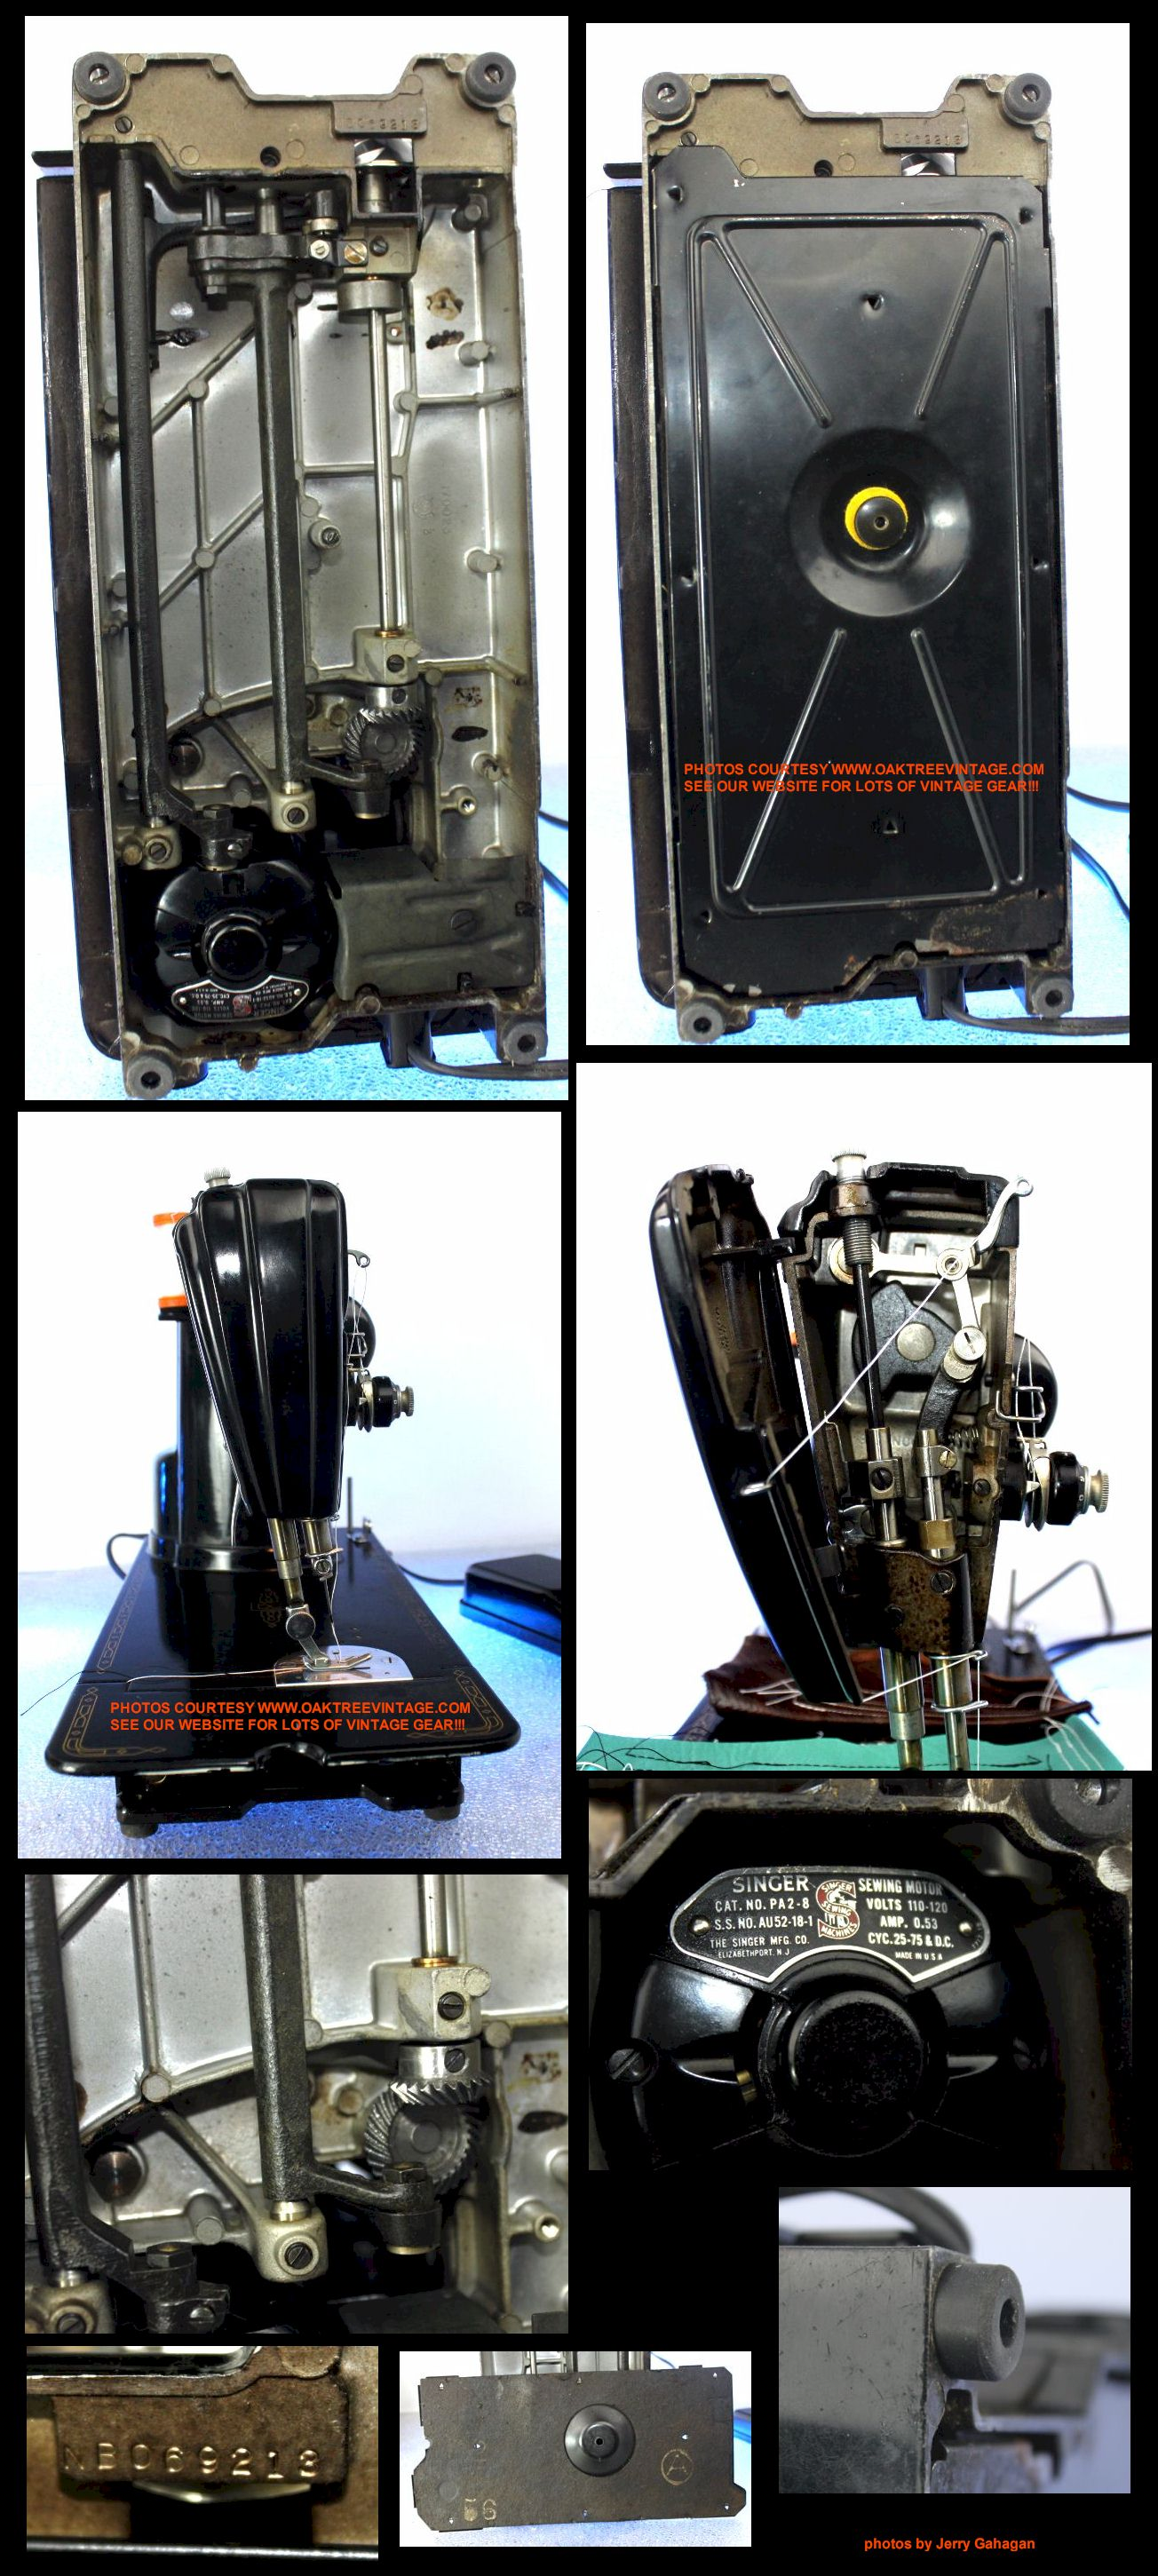 Vintage Serviced Singer 301 Sewing Machines that have been ... on hvac diagrams, switch diagrams, motor diagrams, pinout diagrams, series and parallel circuits diagrams, sincgars radio configurations diagrams, electronic circuit diagrams, transformer diagrams, honda motorcycle repair diagrams, electrical diagrams, smart car diagrams, friendship bracelet diagrams, lighting diagrams, engine diagrams, gmc fuse box diagrams, battery diagrams, internet of things diagrams, troubleshooting diagrams, led circuit diagrams,